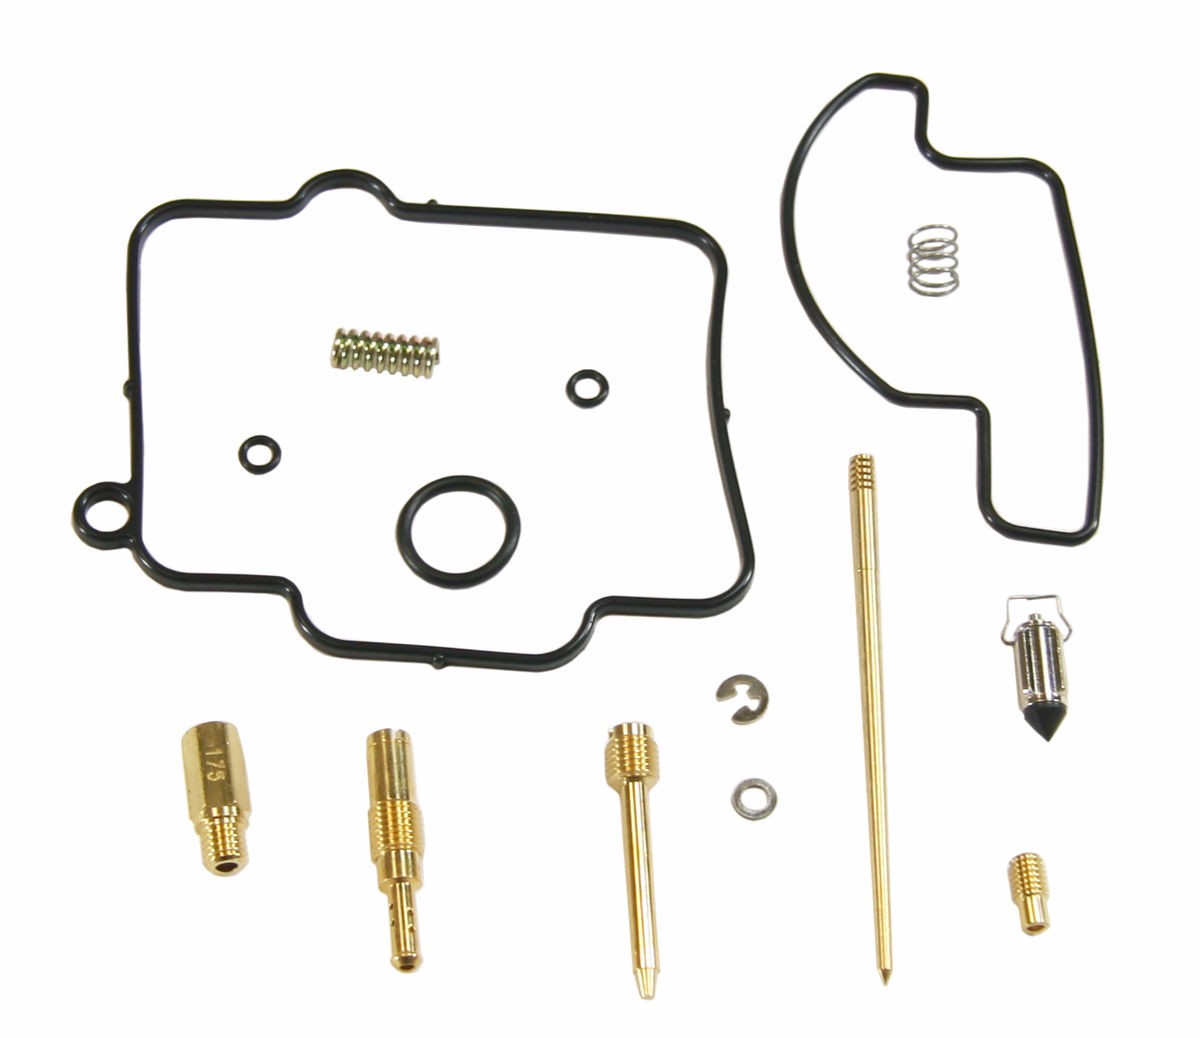 Motorcycle Carburetor Carb Rebuild Kit Repair For Yamaha Yz250 2000 Wiring Diagram 2001 Part In From Automobiles Motorcycles On